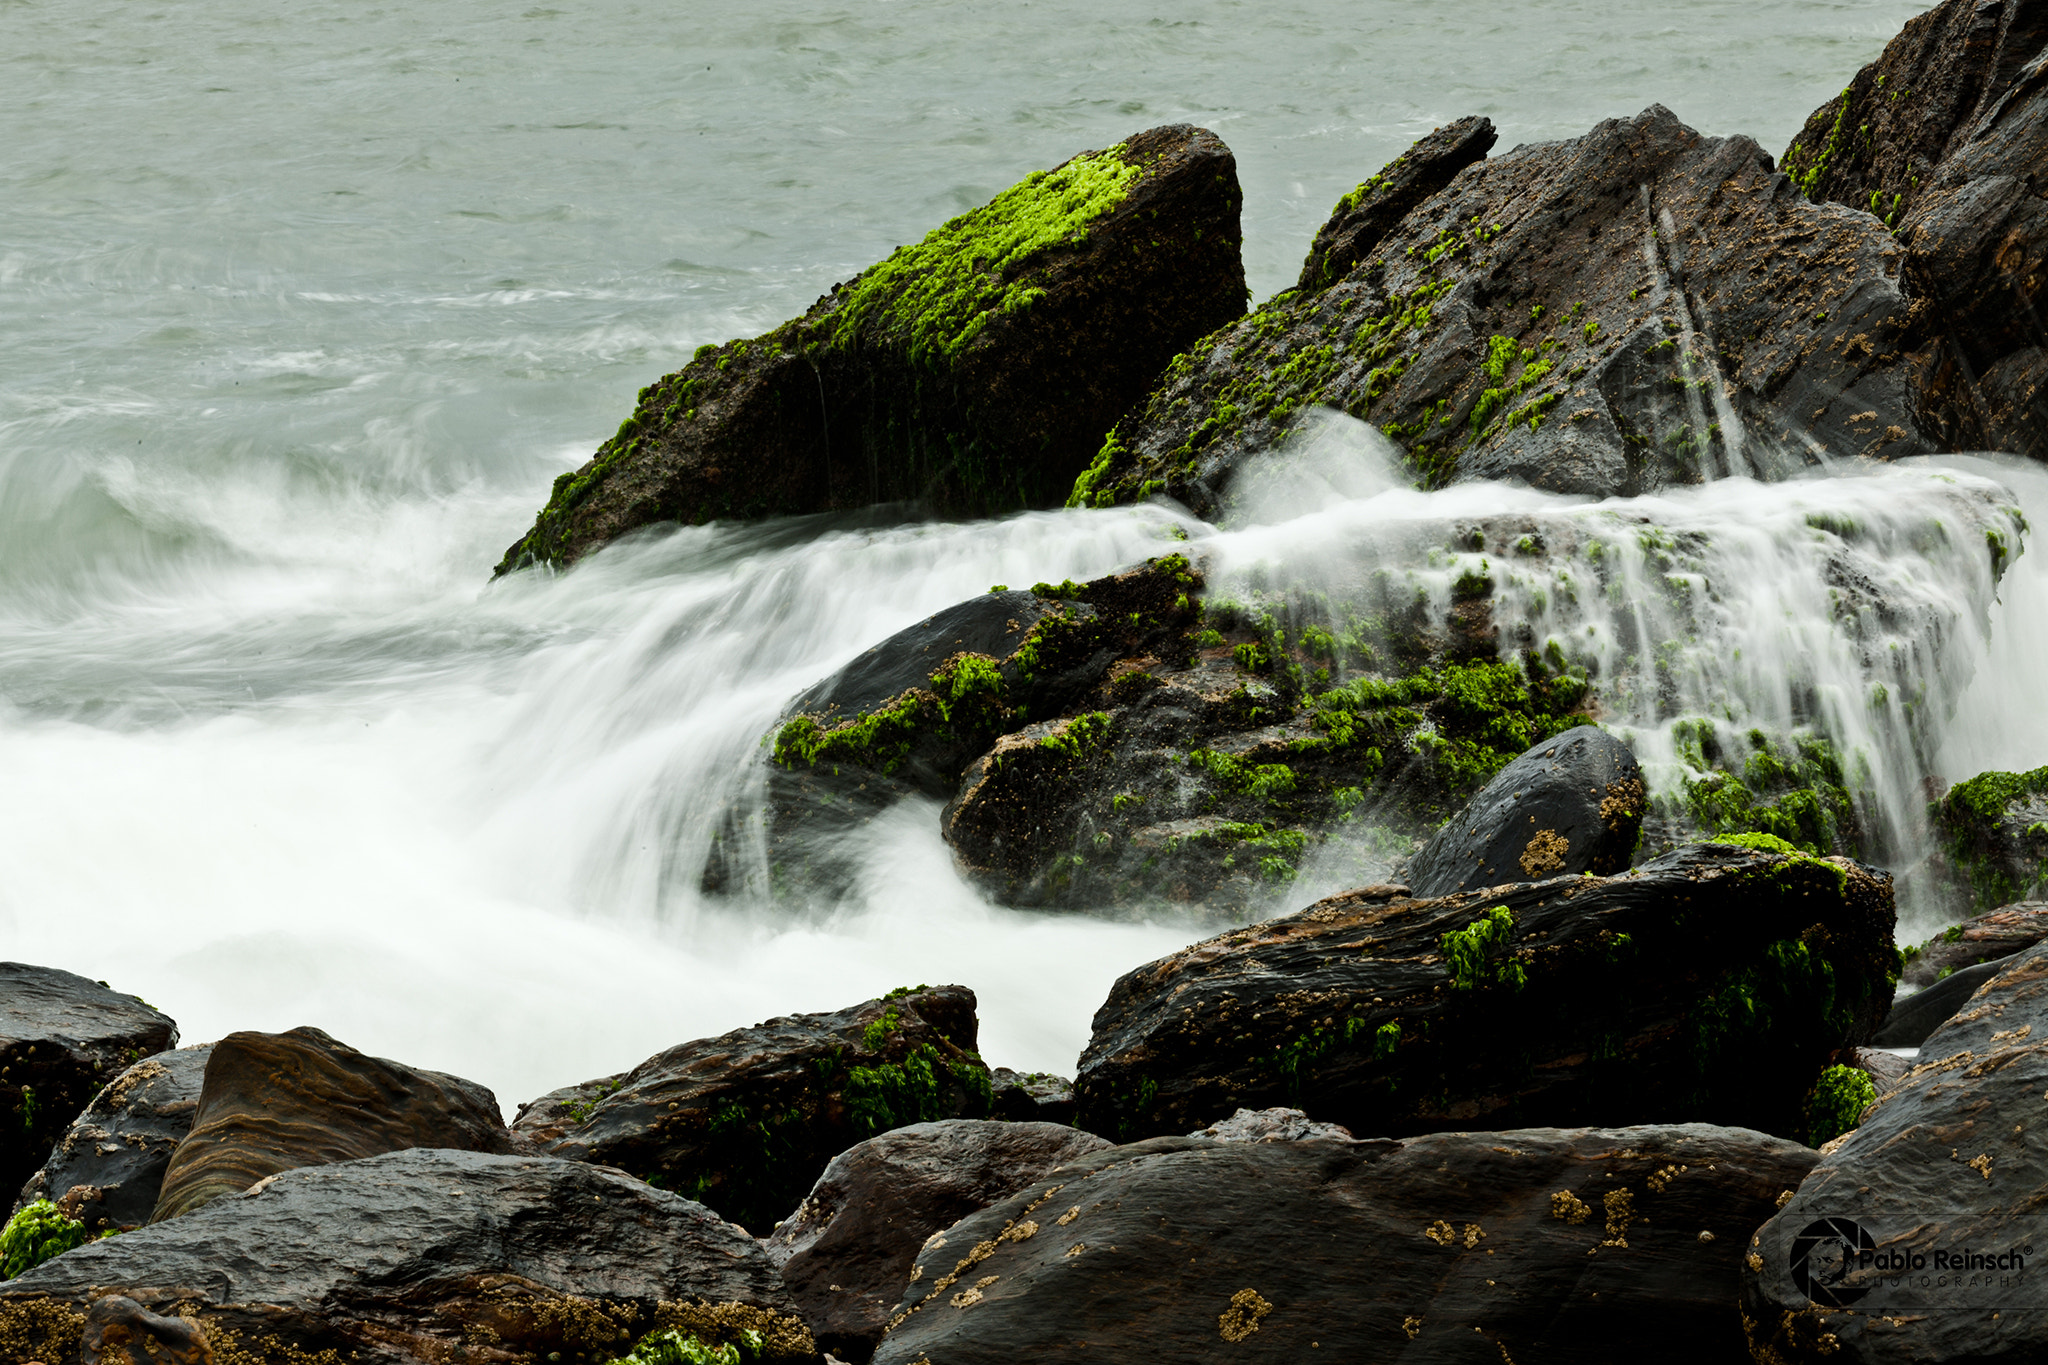 Photograph The veil over rocks by Pablo Reinsch on 500px